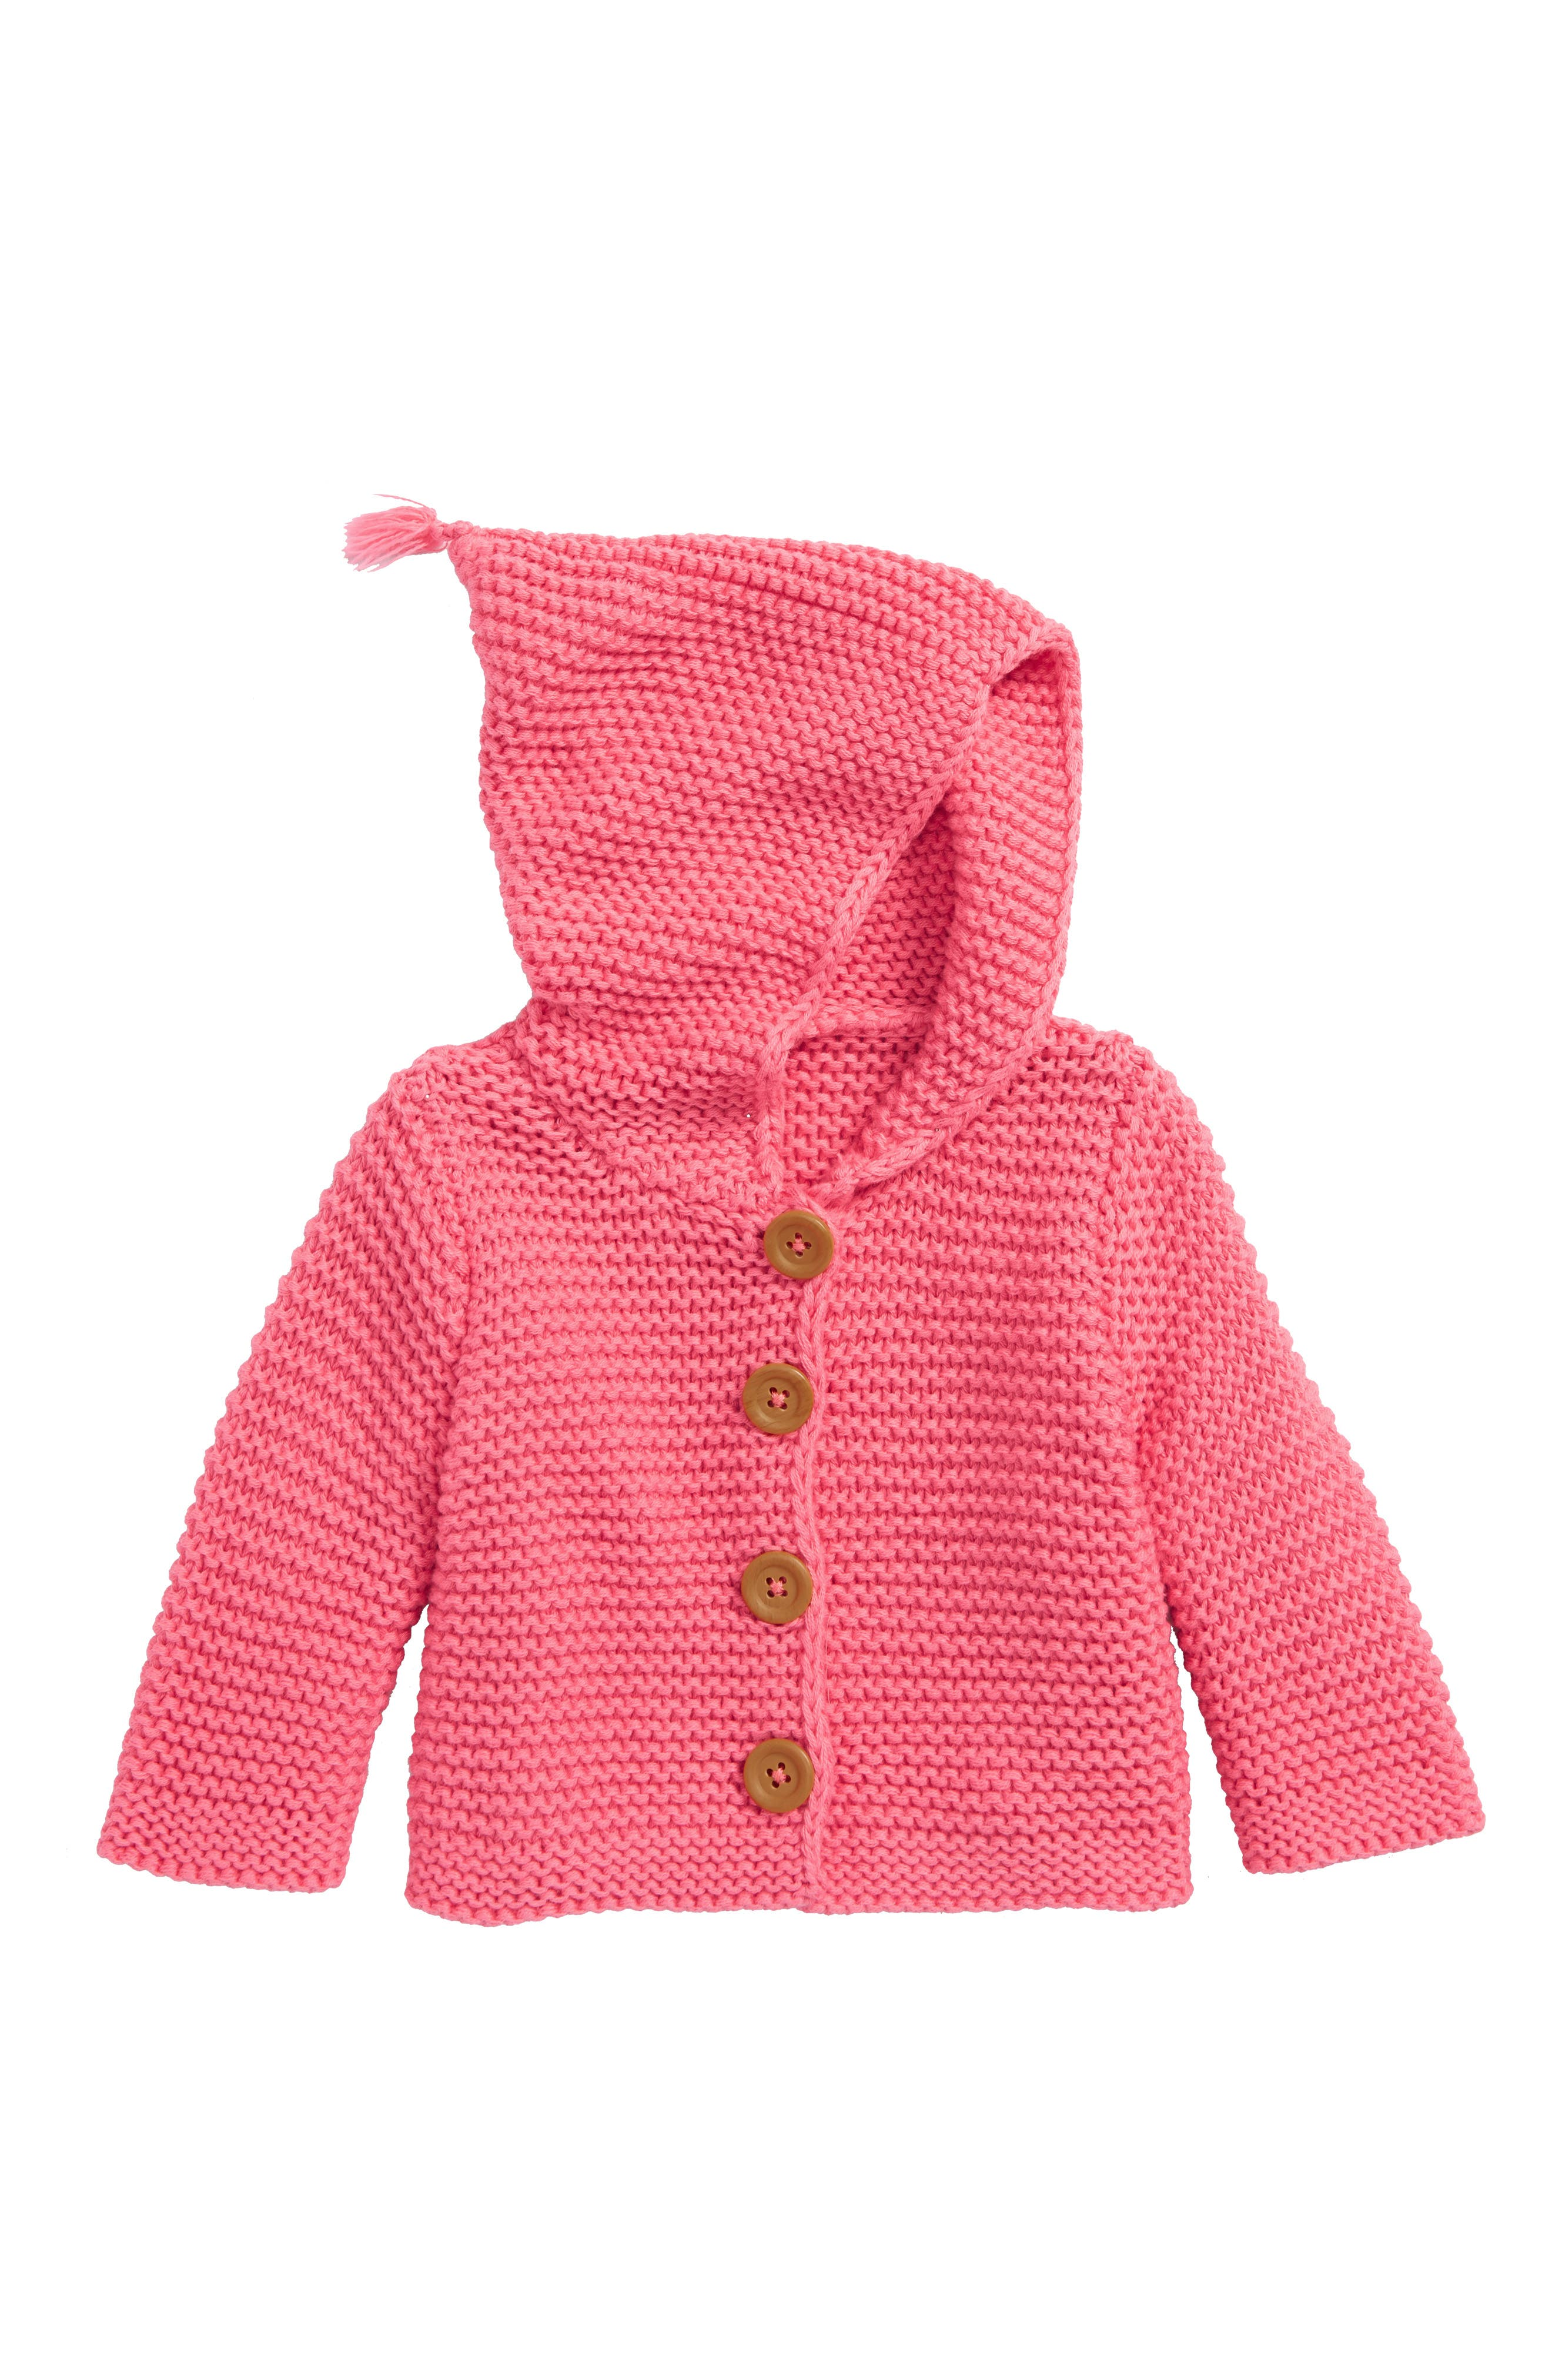 Lofty Organic Cotton Hooded Cardigan,                         Main,                         color, 651